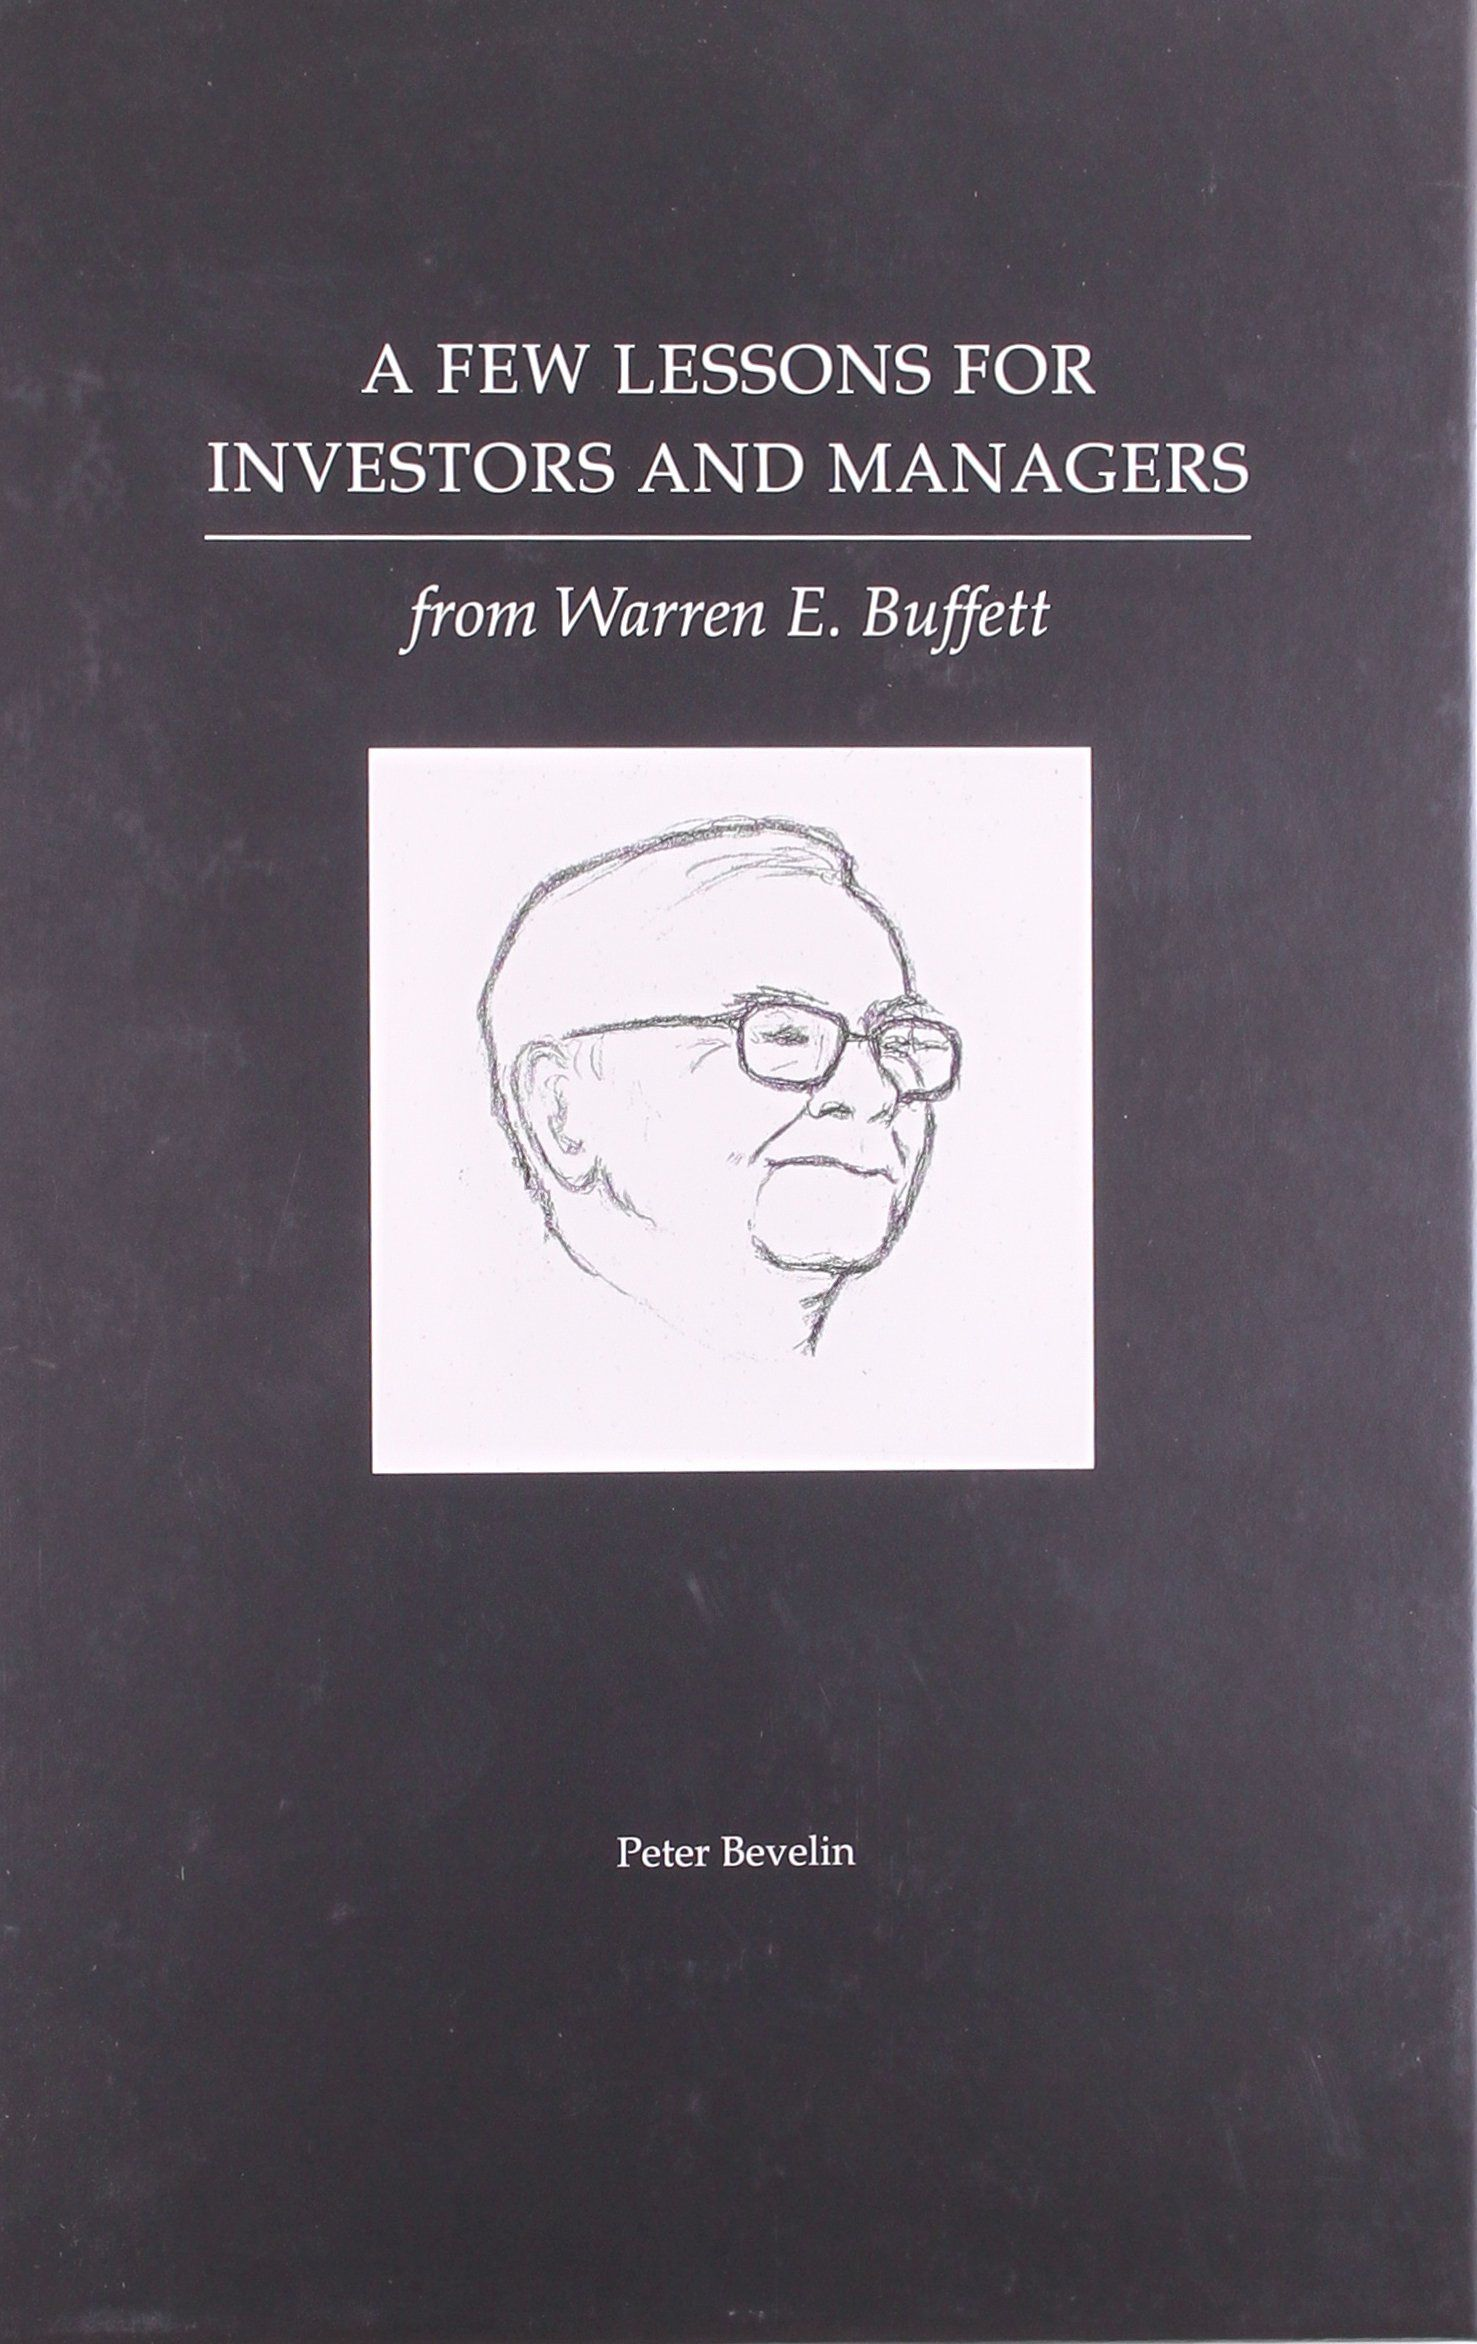 006 Essay Example The Essays Of Warren Buffett Lessons For Investors And Managers Striking 4th Edition Free Pdf Full